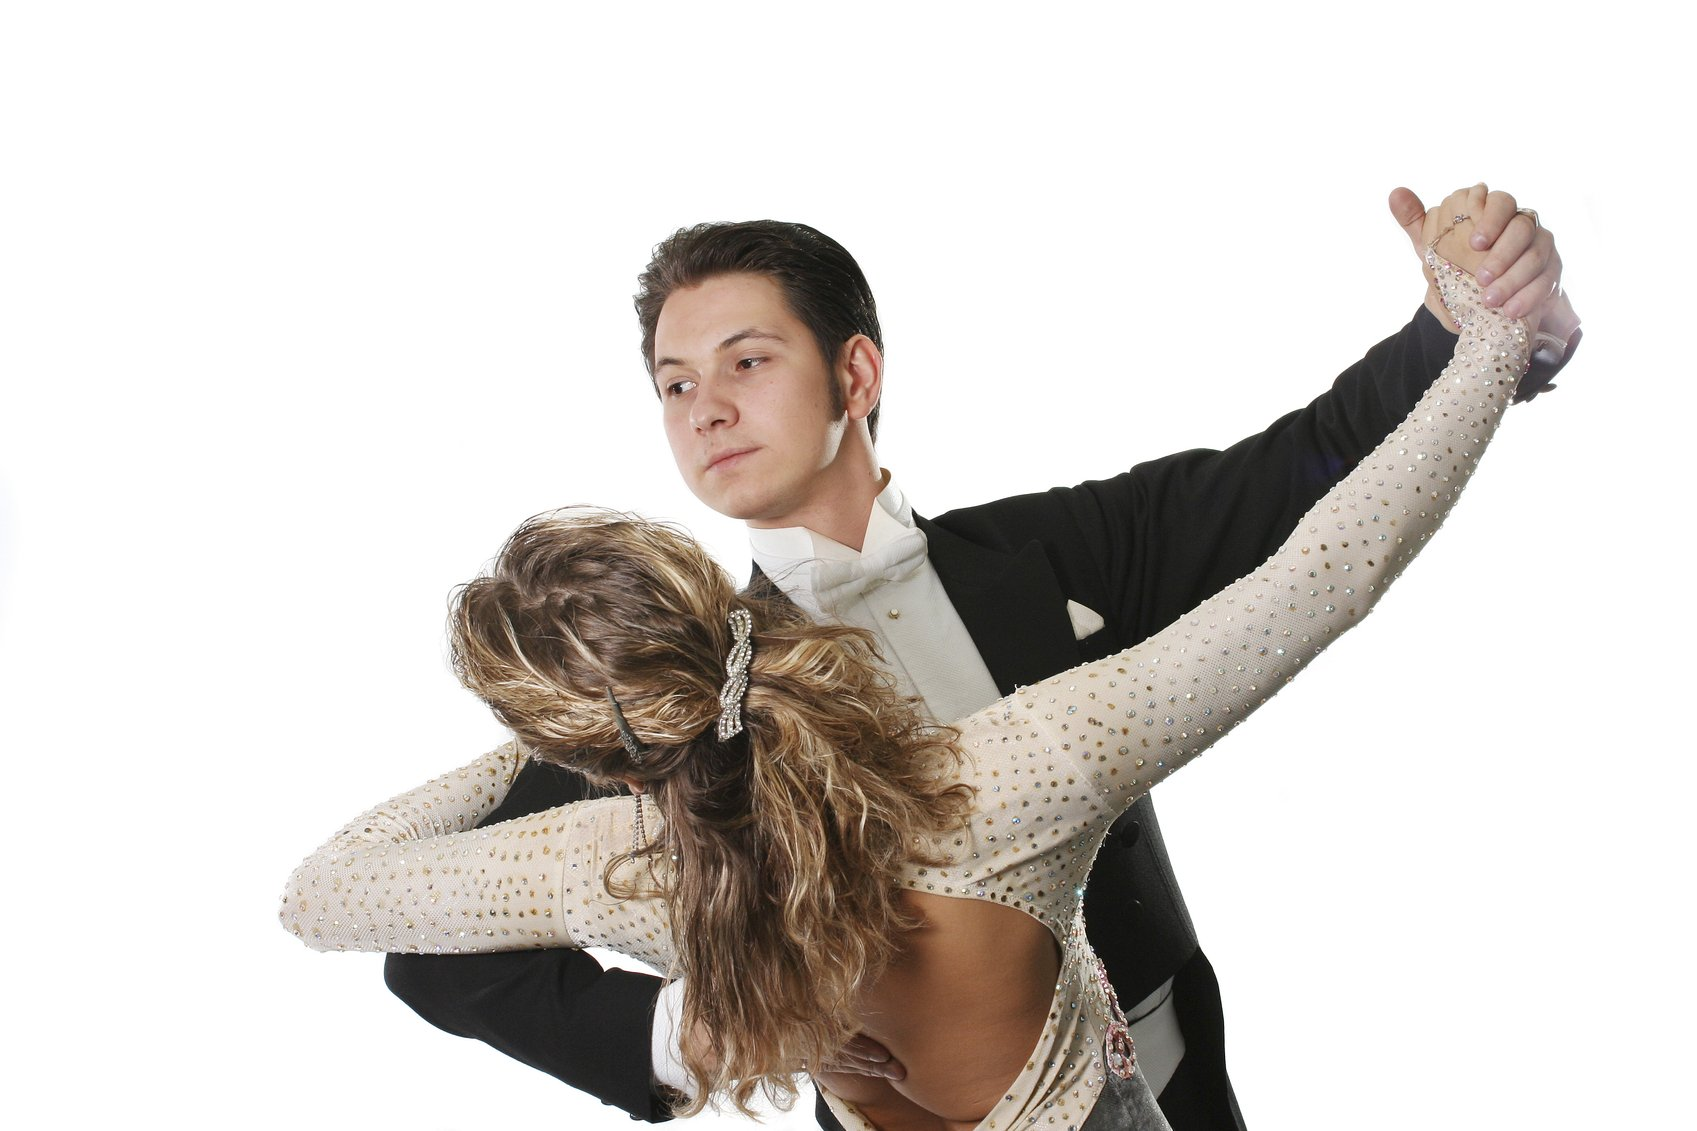 If you've been wanting to try ballroom dance, but you've been too shy to learn it in a group, private ballroom dance lessons are a great alternative